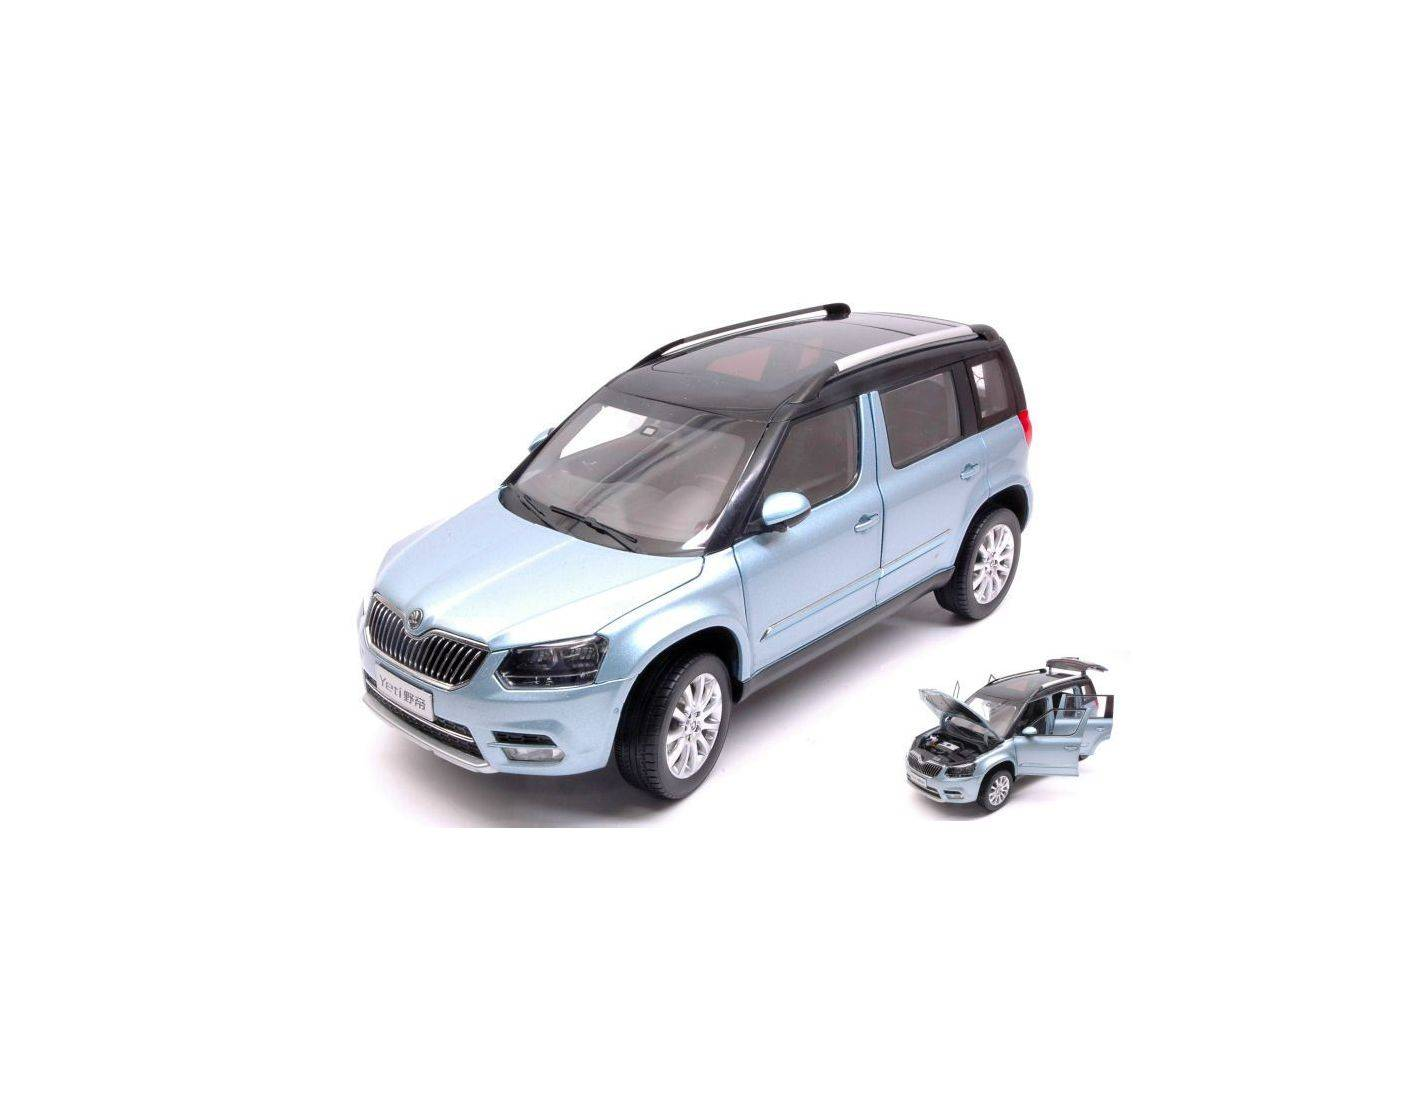 Abrex AB18031SK SKODA YETI FL 2013 LIGHT BLUE METALLIC 1:18 Modellino